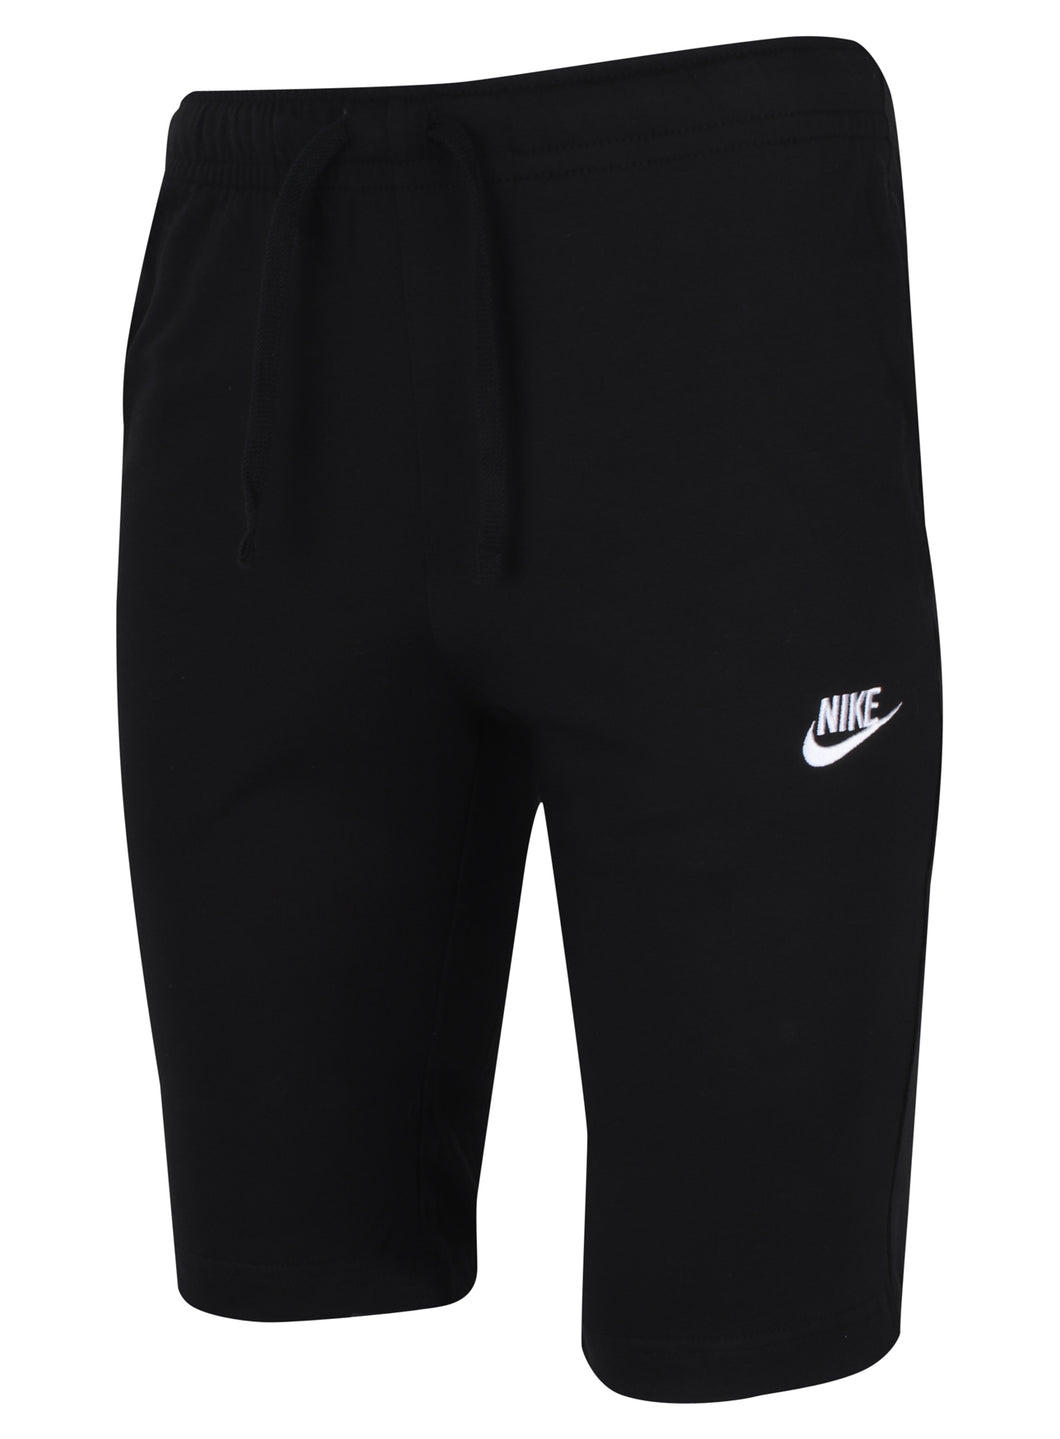 Nike Men's NSW Club Black 12 Inch Knee Length Cotton Jersey Shorts